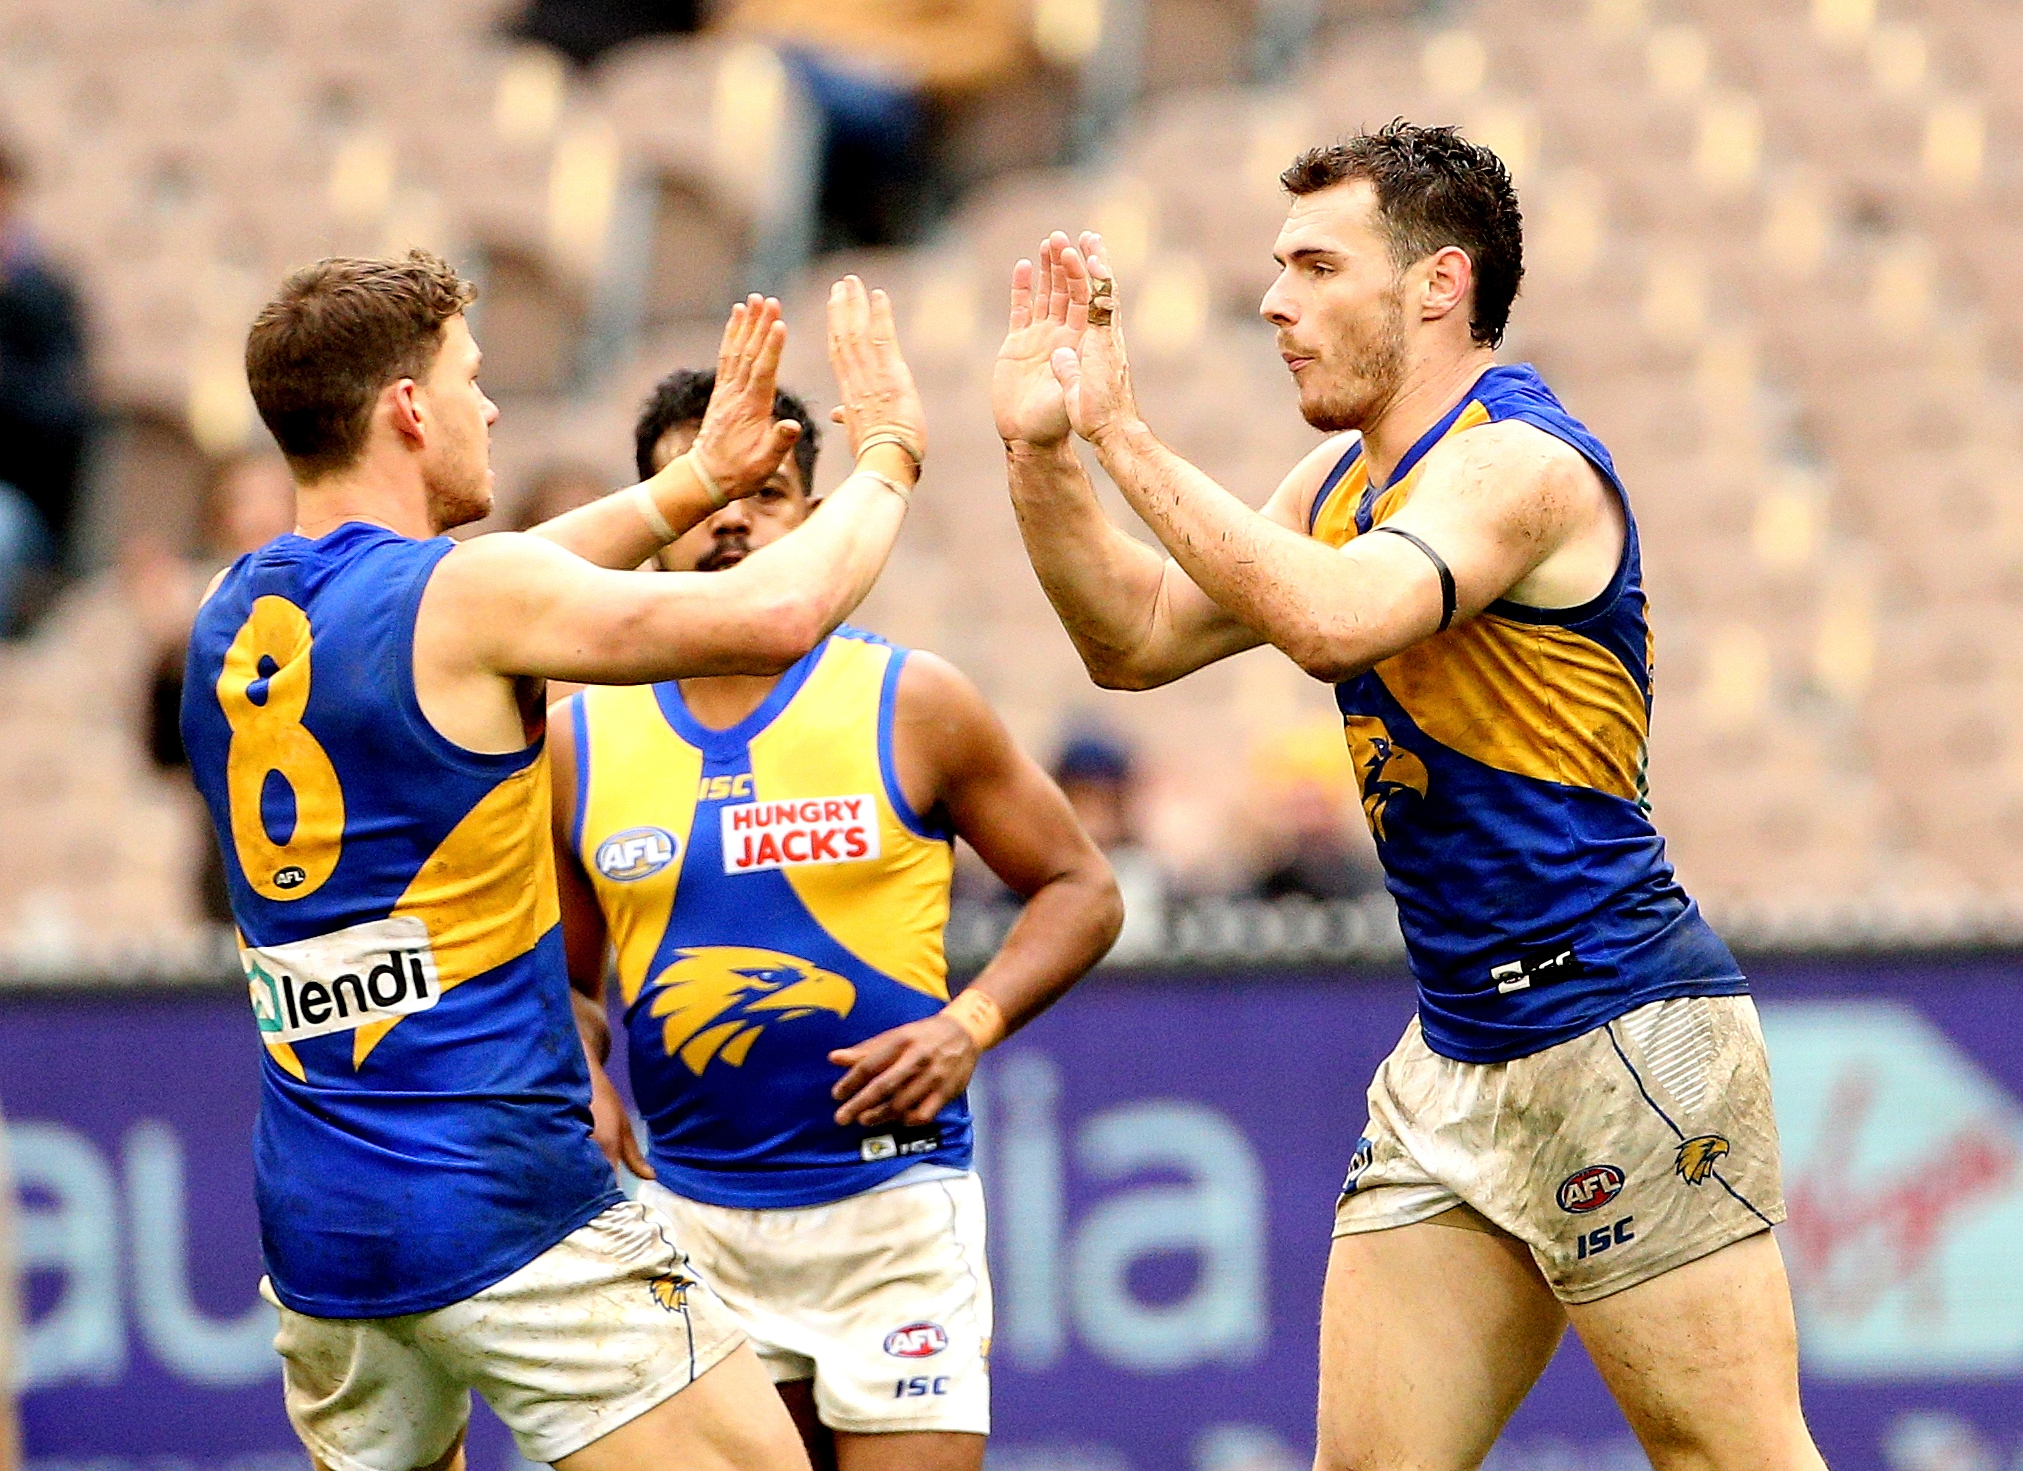 Article image for Eagles beat Hawks in Saturday afternoon thriller at the MCG